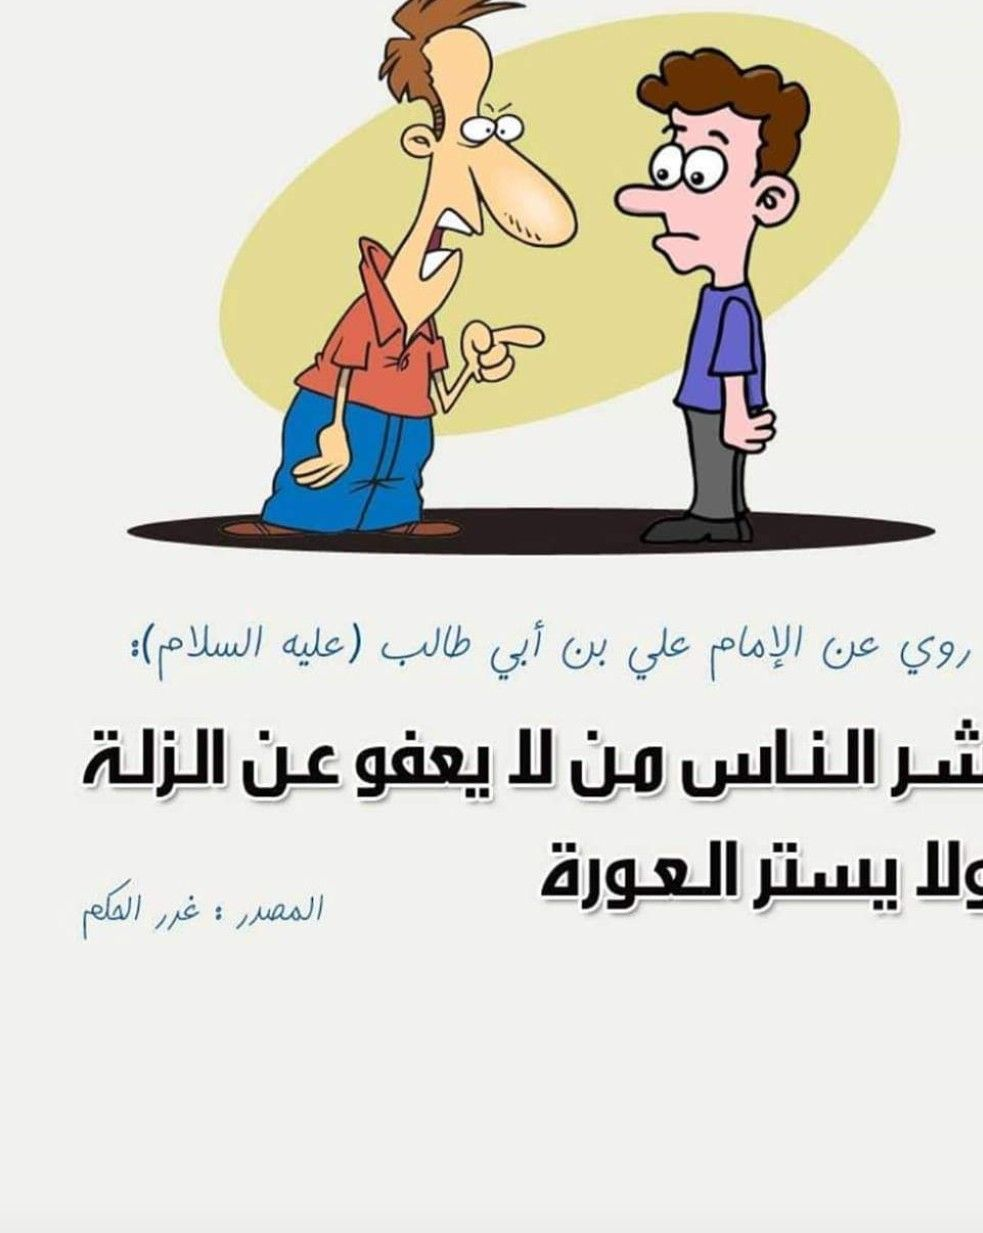 Pin By Hadeel On عراق Family Guy Fictional Characters Character